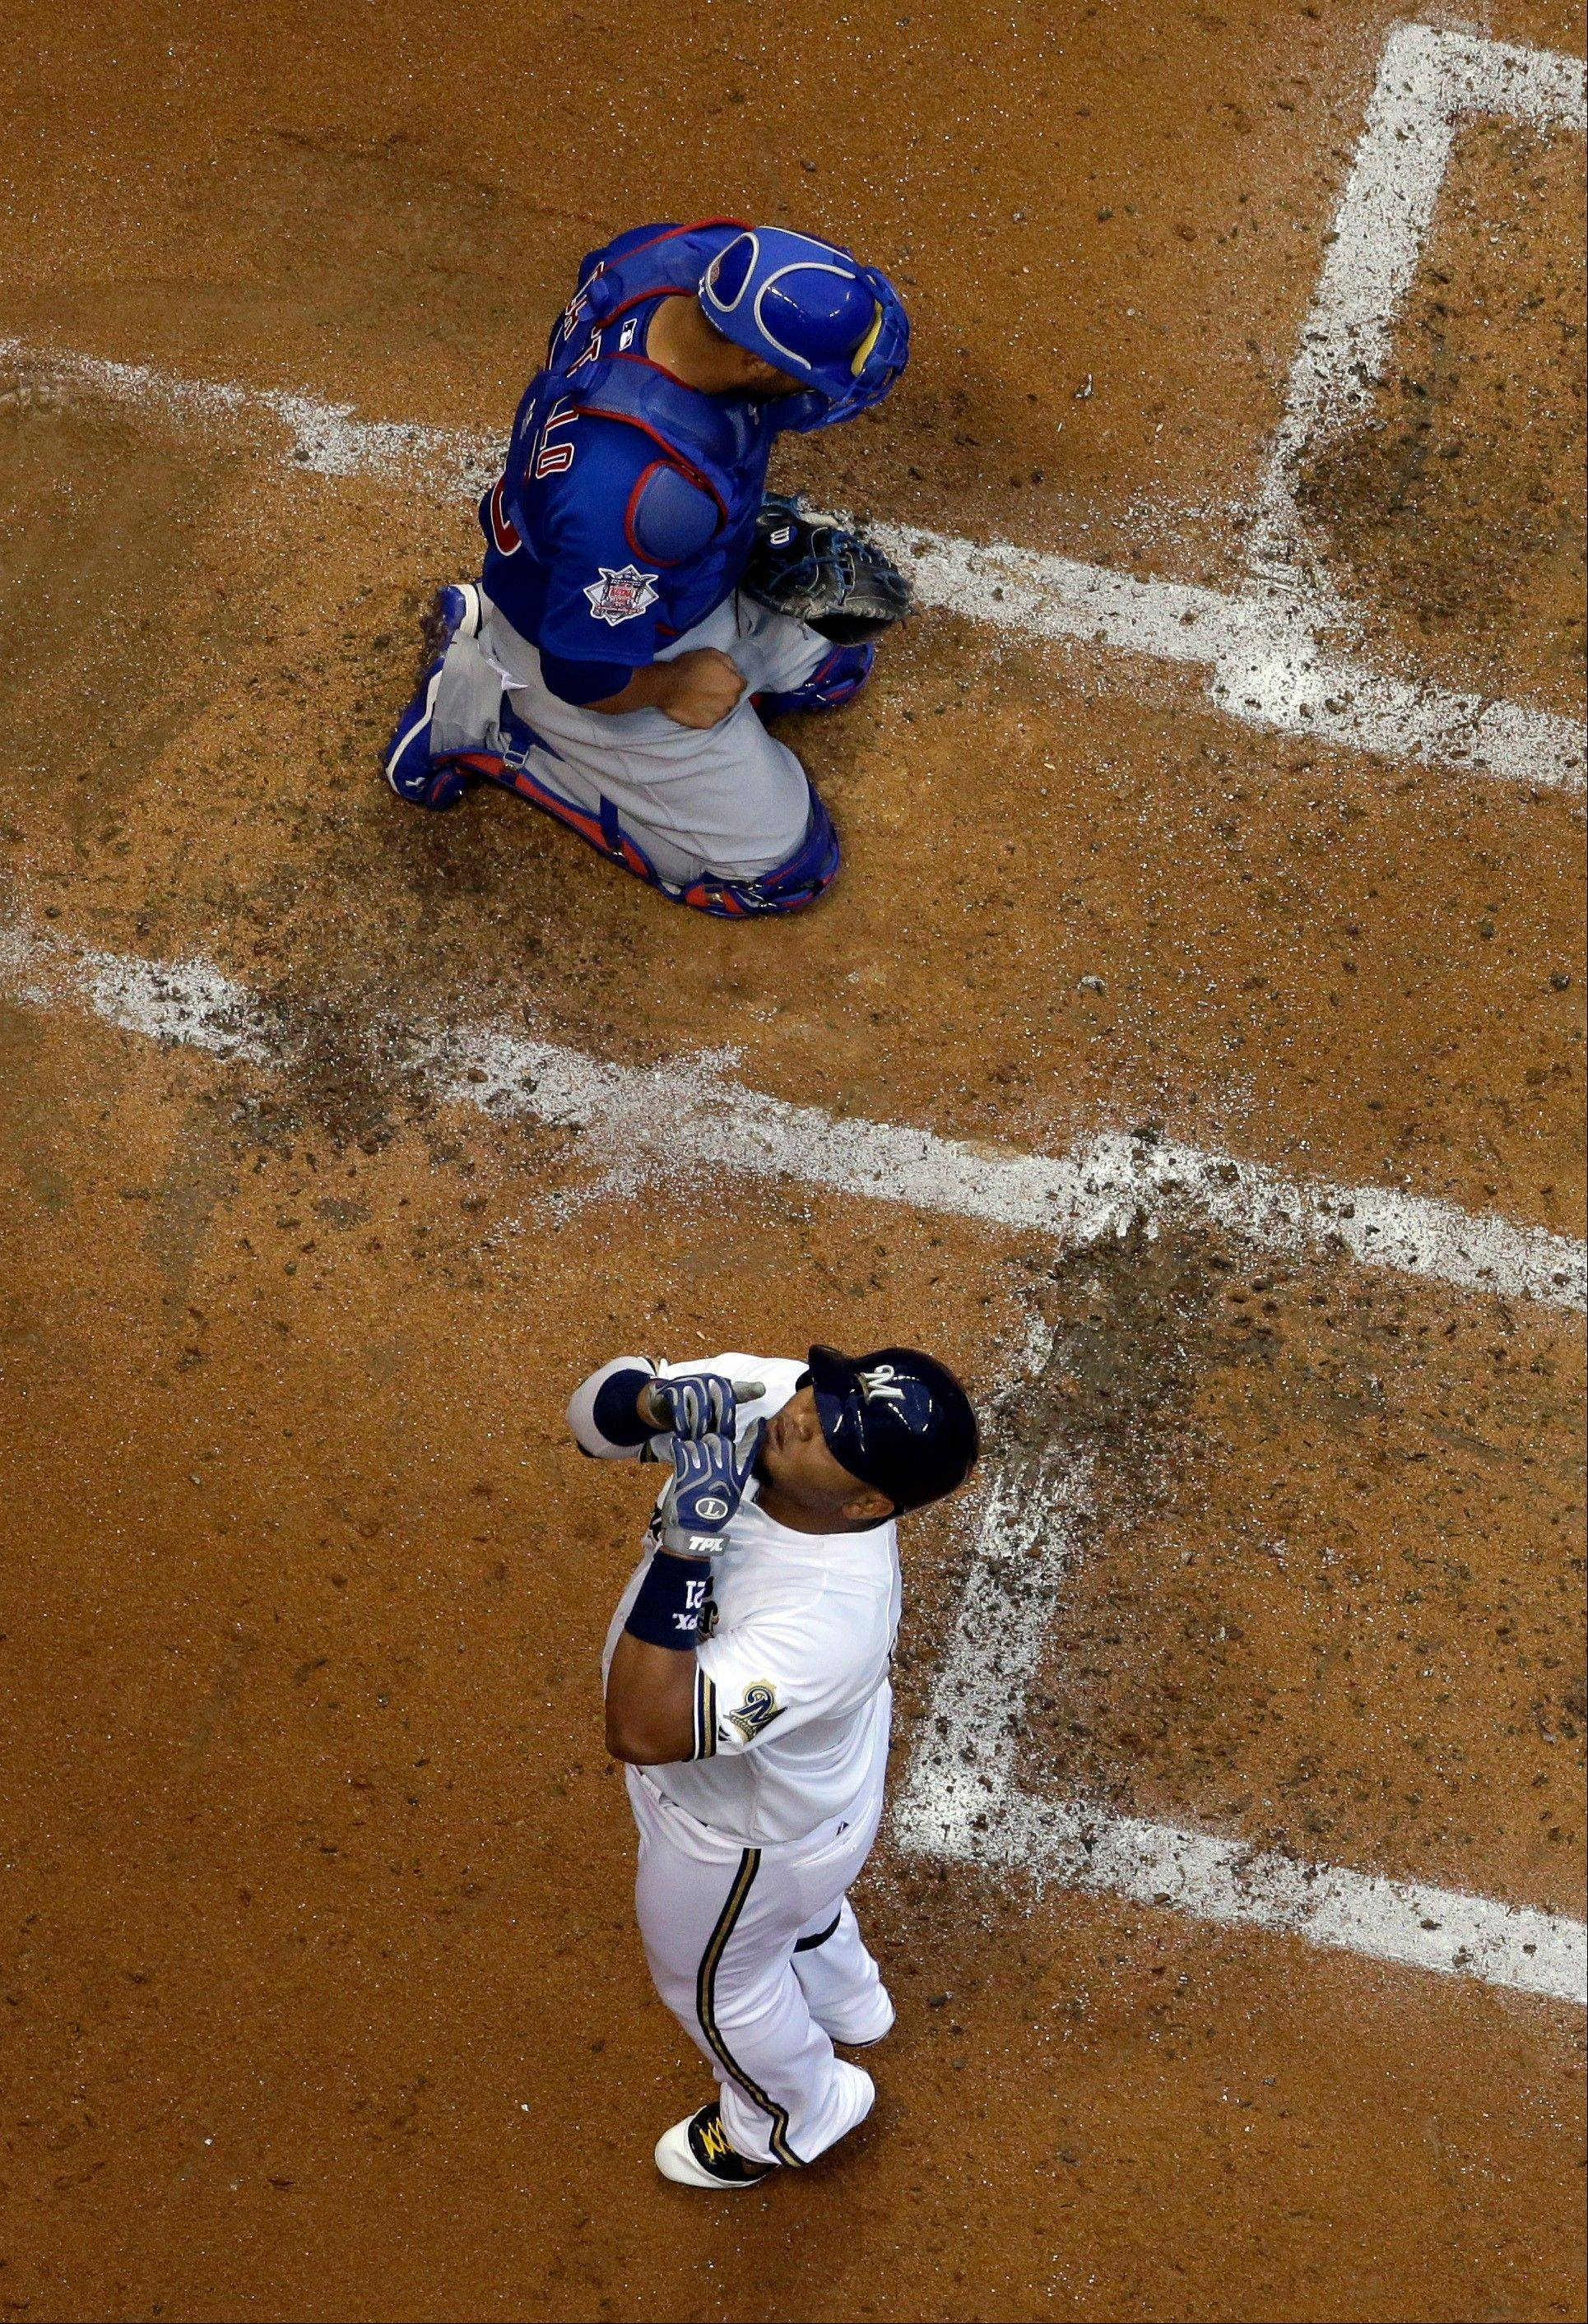 Milwaukee Brewers' Juan Francisco reacts in front of Chicago Cubs catcher Welington Castillo after Francisco hit a home run during the second inning of a baseball game Tuesday, June 25, 2013, in Milwaukee. (AP Photo/Morry Gash)